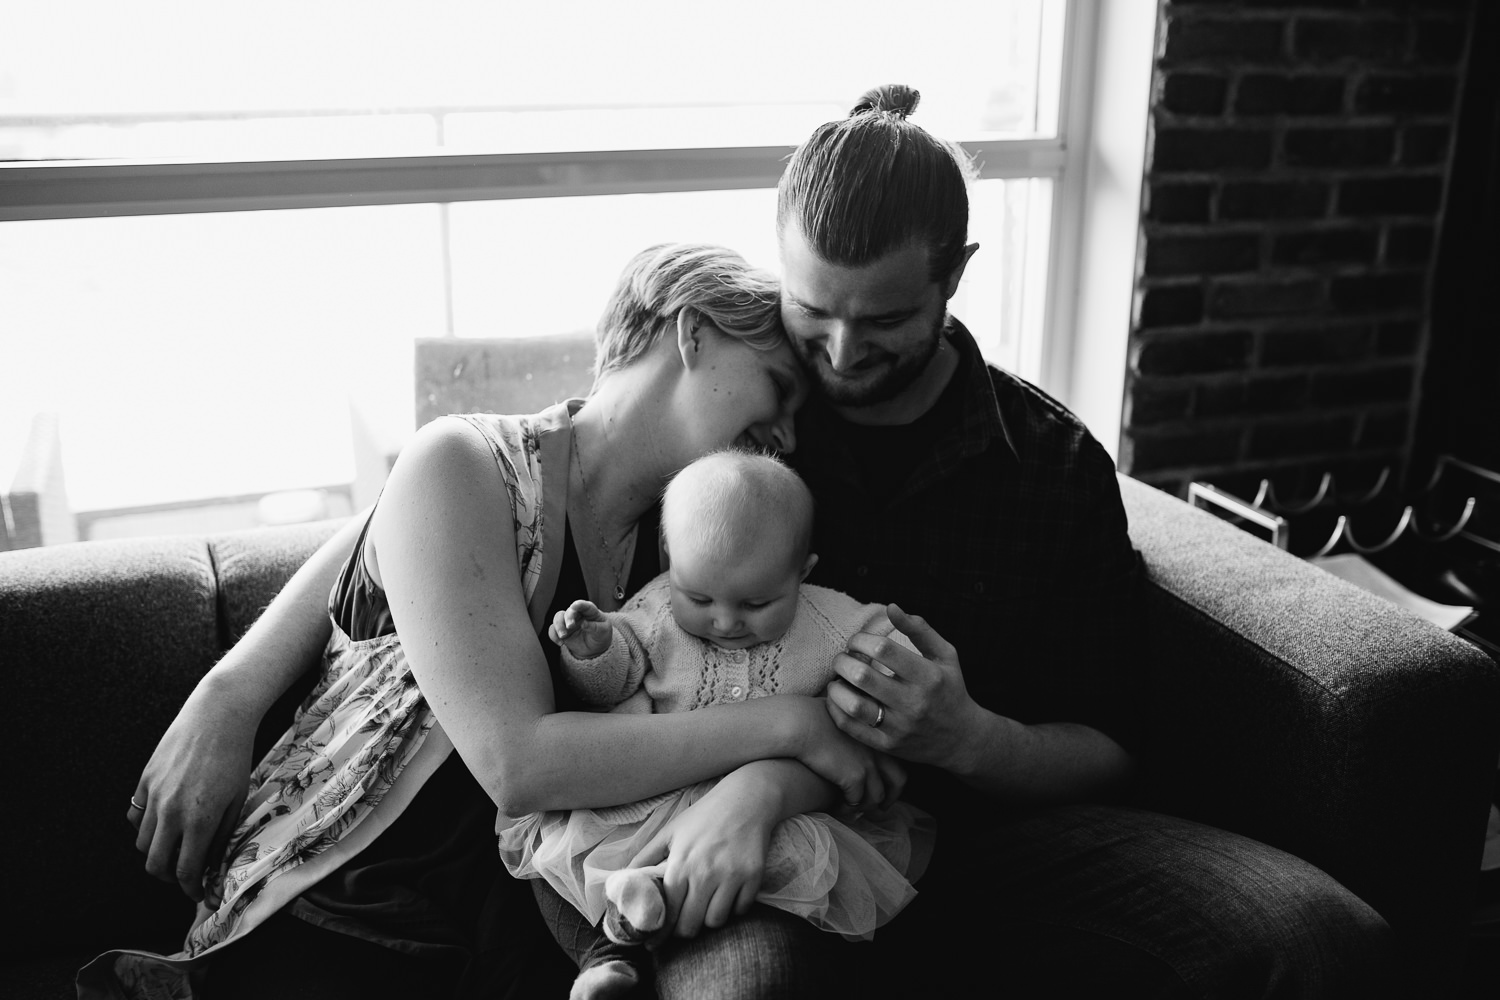 family of 3 sitting on couch, husband and wife snuggle with 5 month old baby girl on mom's lap - Markham lifestyle photos